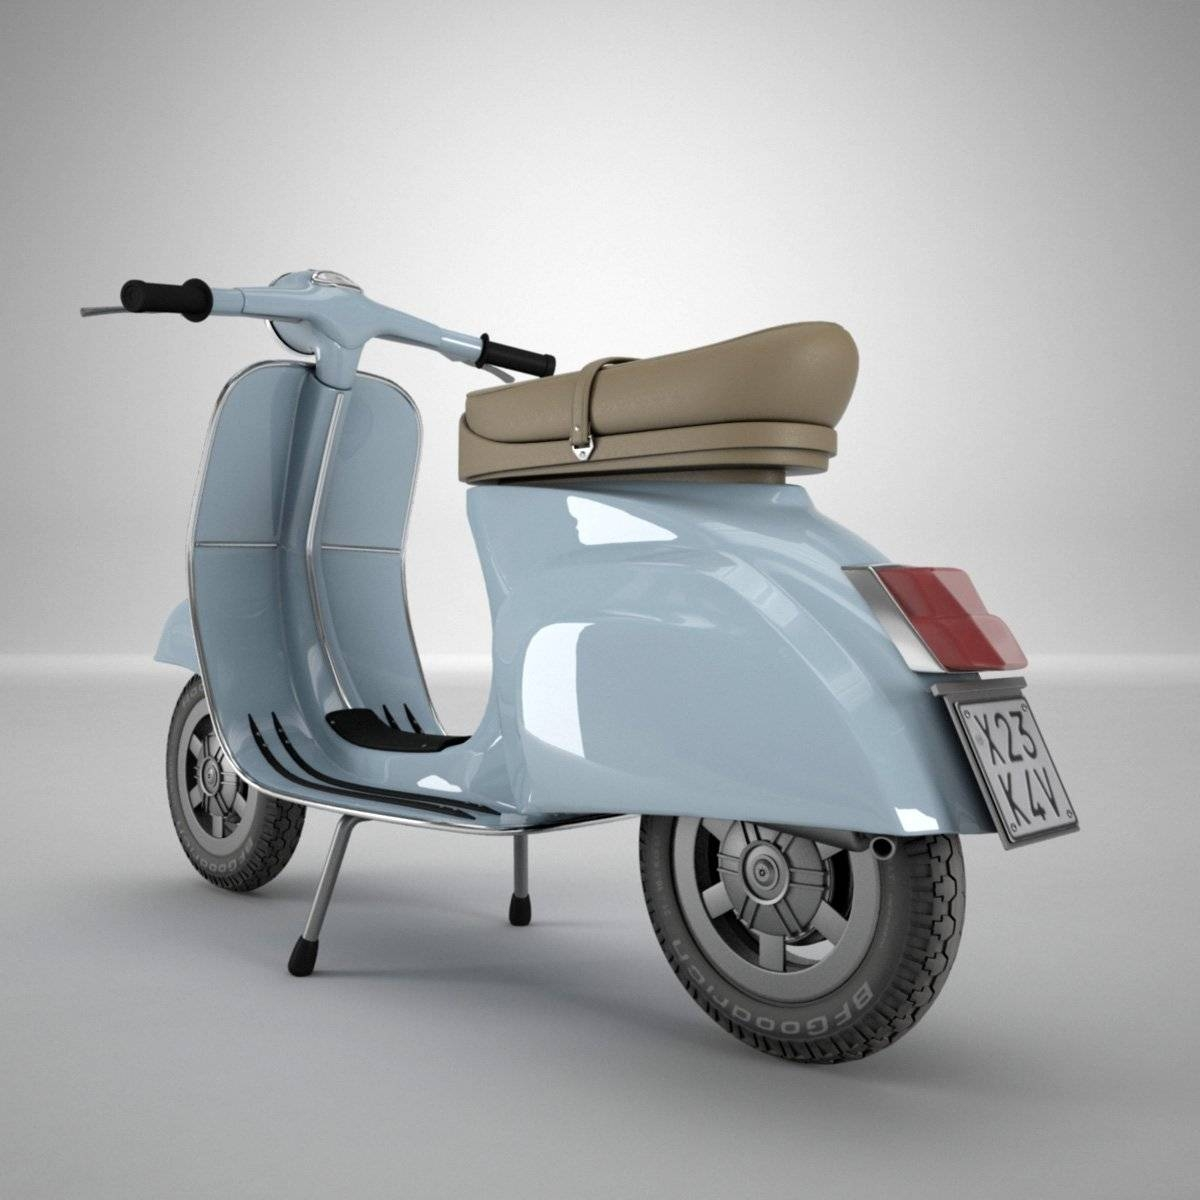 Vespa 3d Model In Motorcycle 3dexport With Regard To 2017 Vespa 3d Wall Art (View 6 of 20)